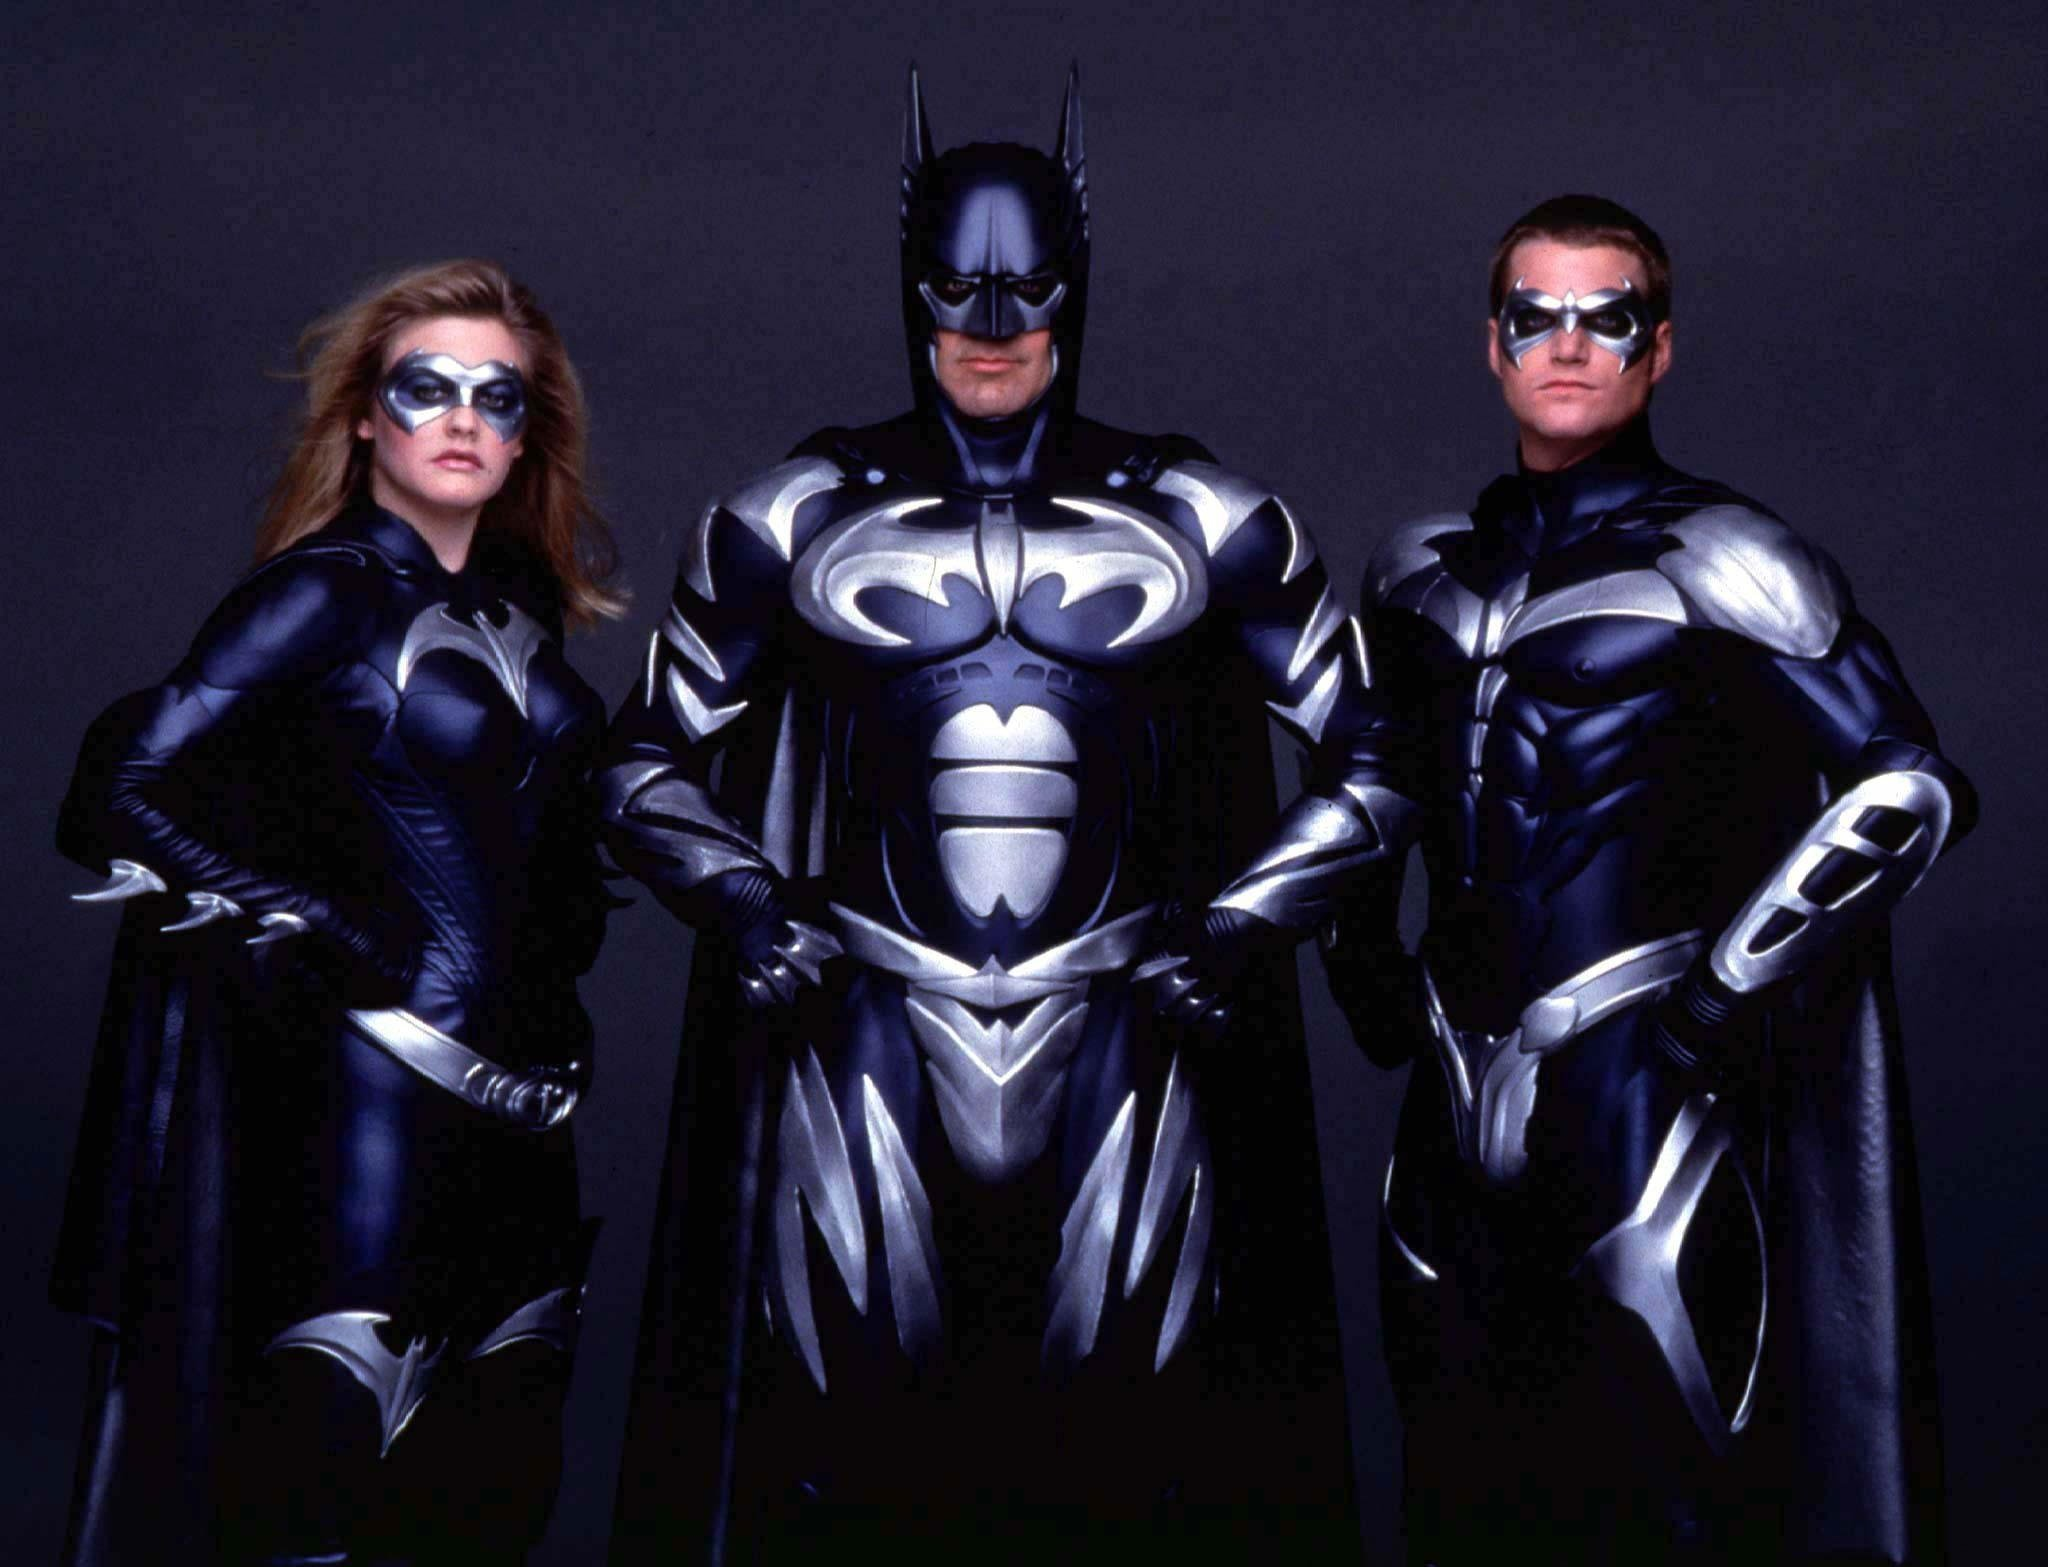 George Clooney reveals he was shunned by Hollywood after disastrous 1997 movie Batman & Robin